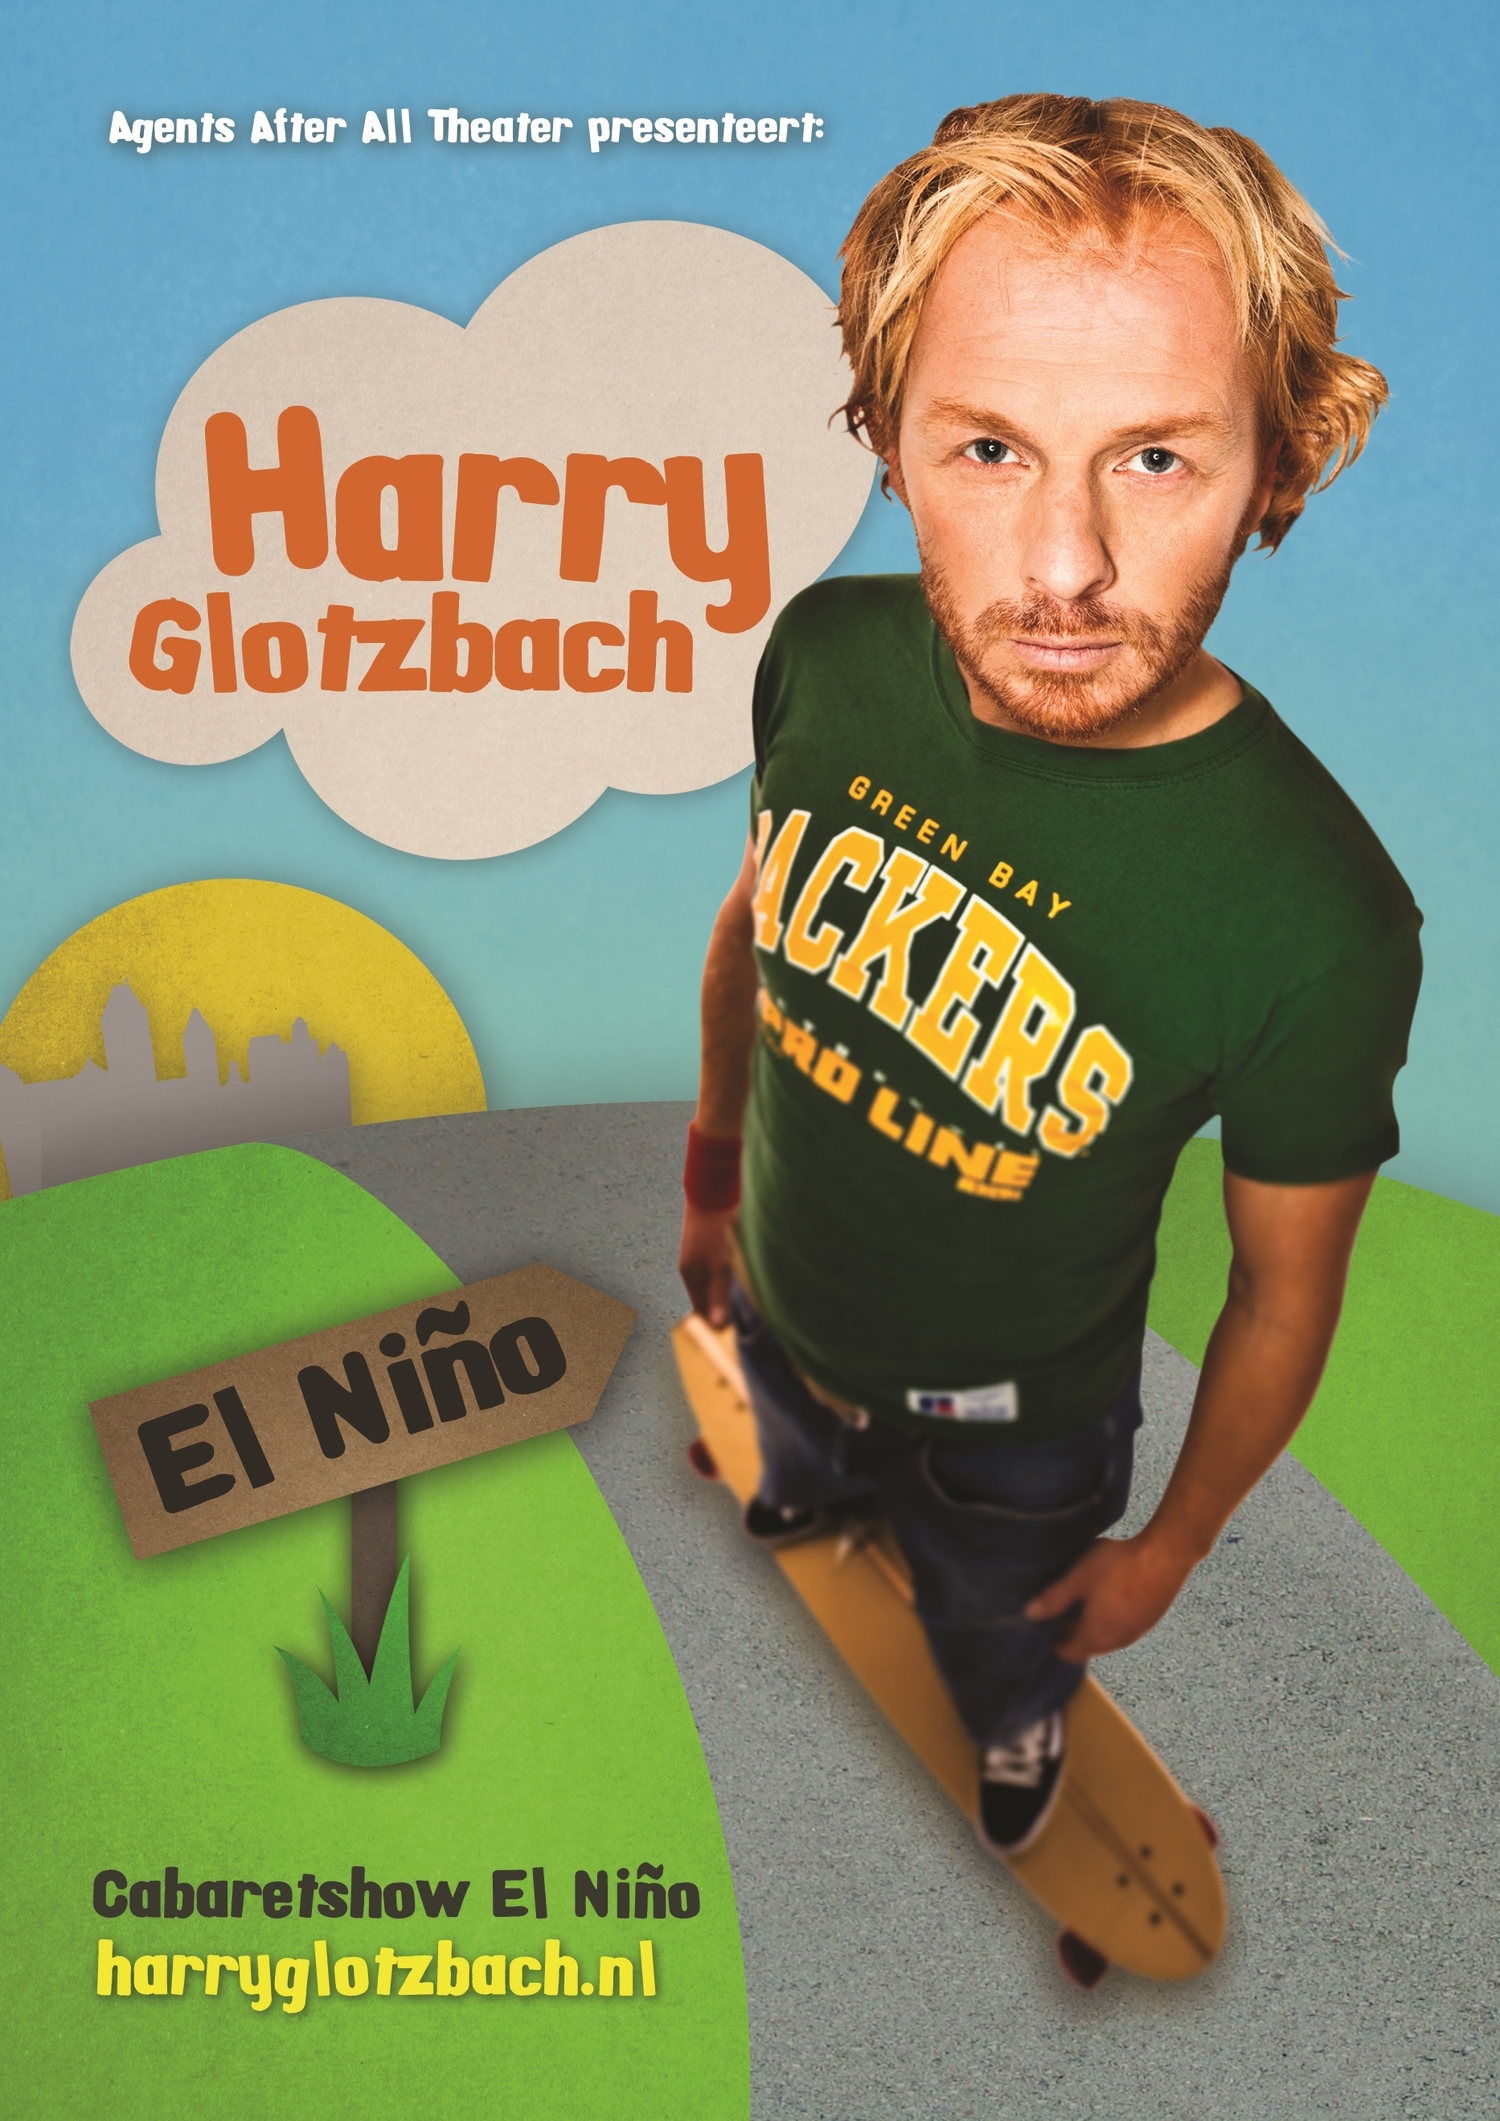 Harry-Glotzbach-El-Nino-Flyer.jpg